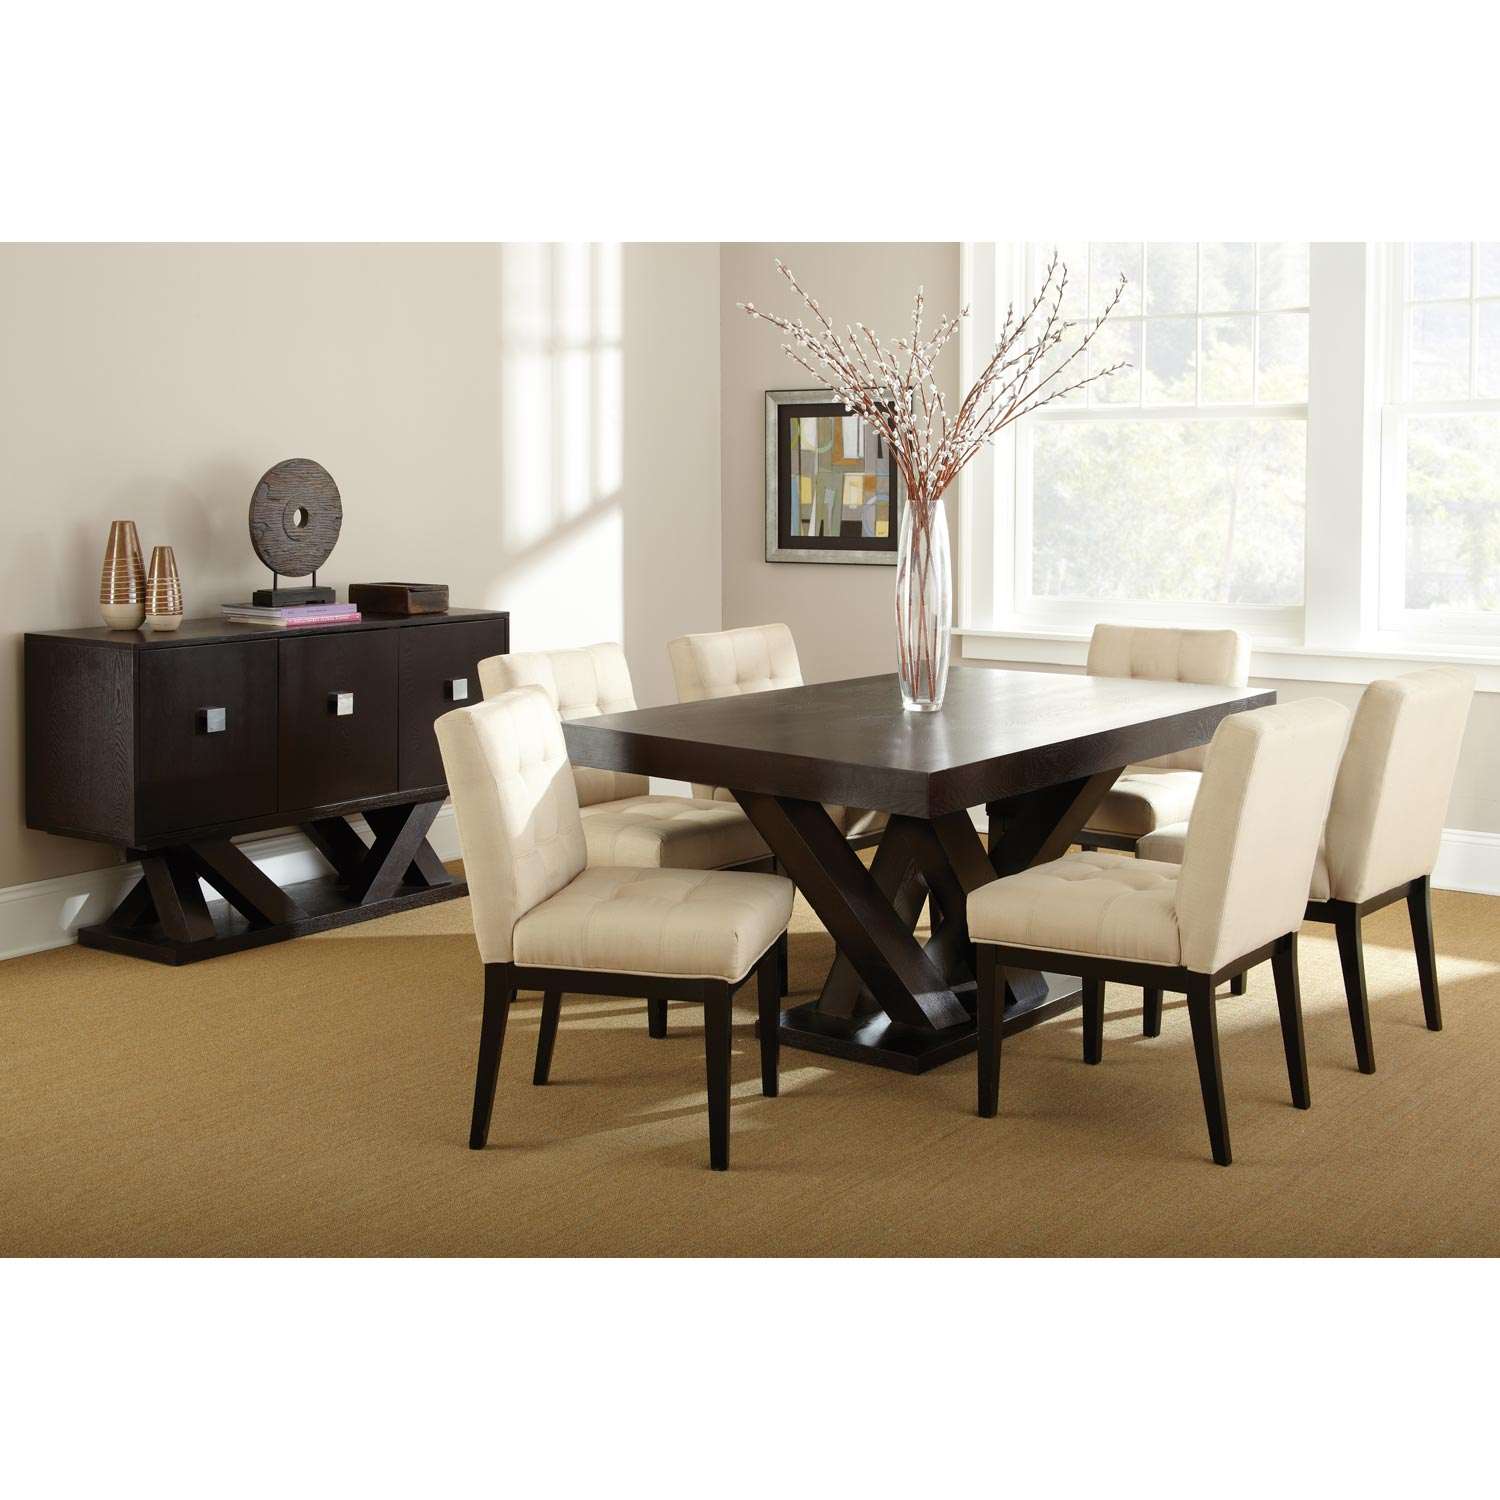 Tiffany Rectangular Dining Table Espresso Wood DCG Stores : 13 set 2 from www.dcgstores.com size 1500 x 1500 jpeg 195kB